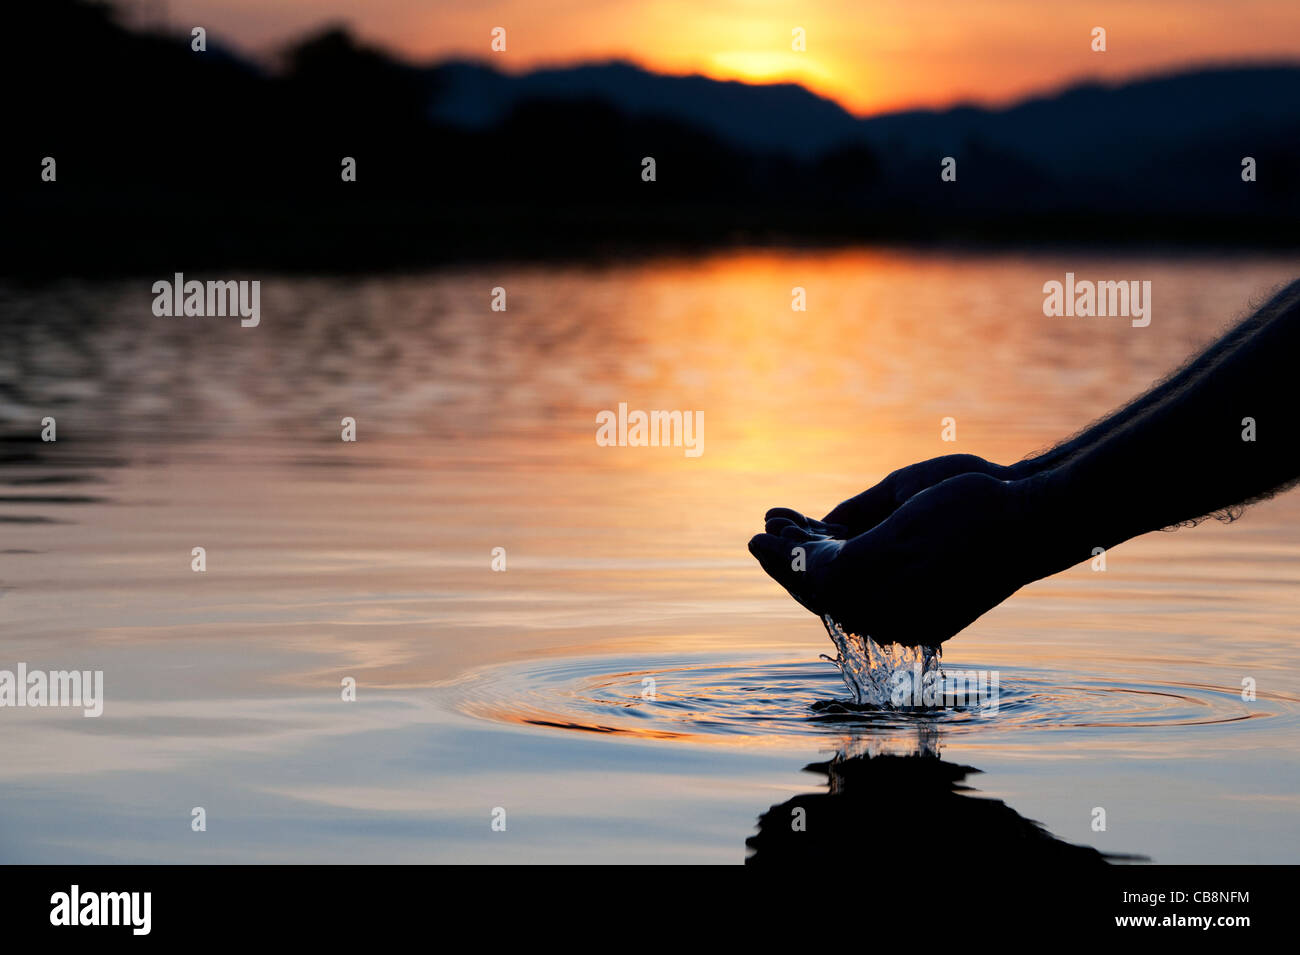 Cupped hands scooping up water in a still lake at sunrise in India. Silhouette - Stock Image